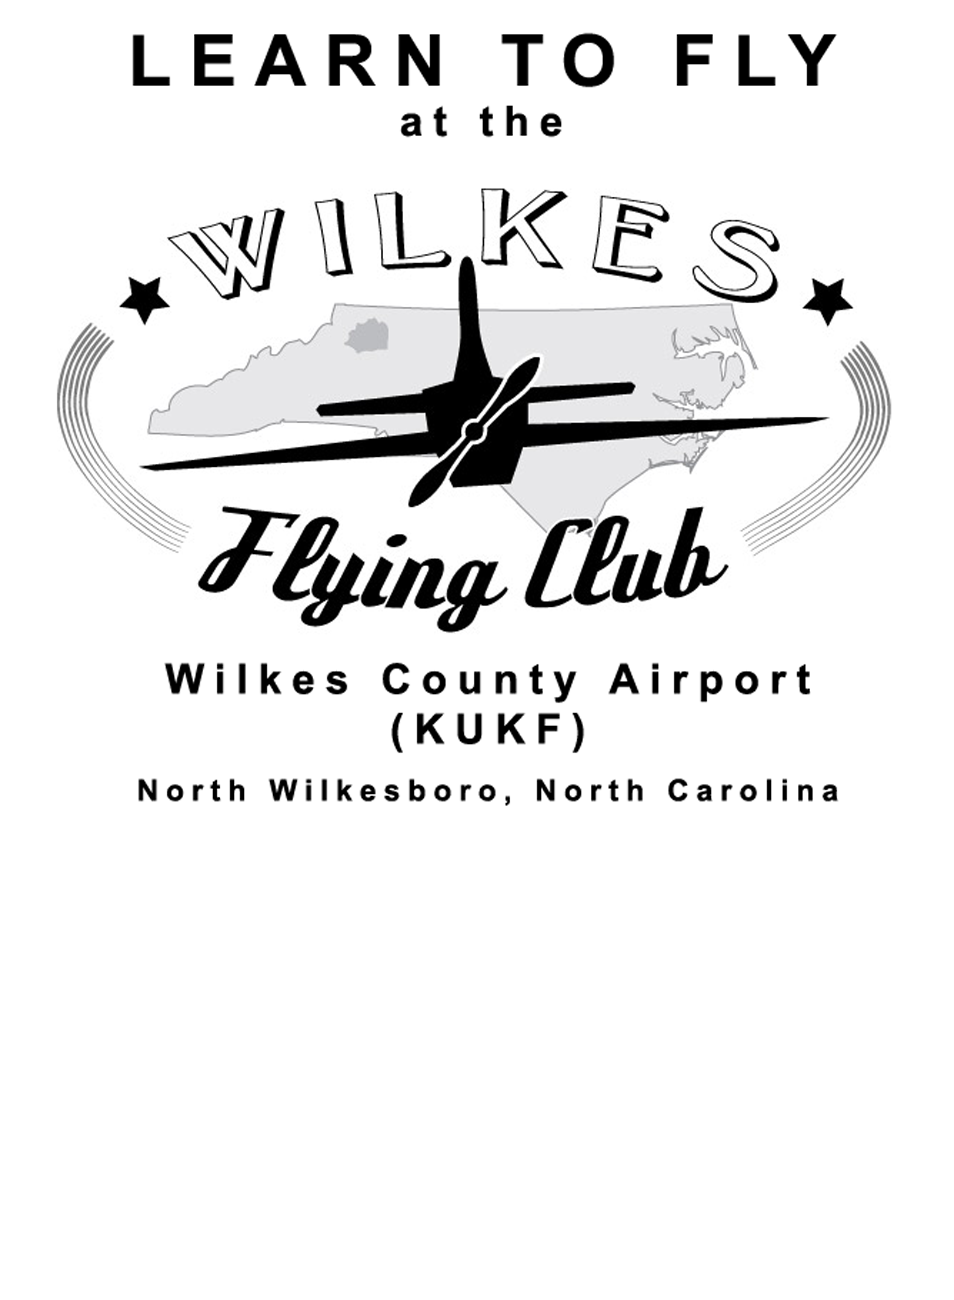 Learn to Fly at the Wilkes Flying Club